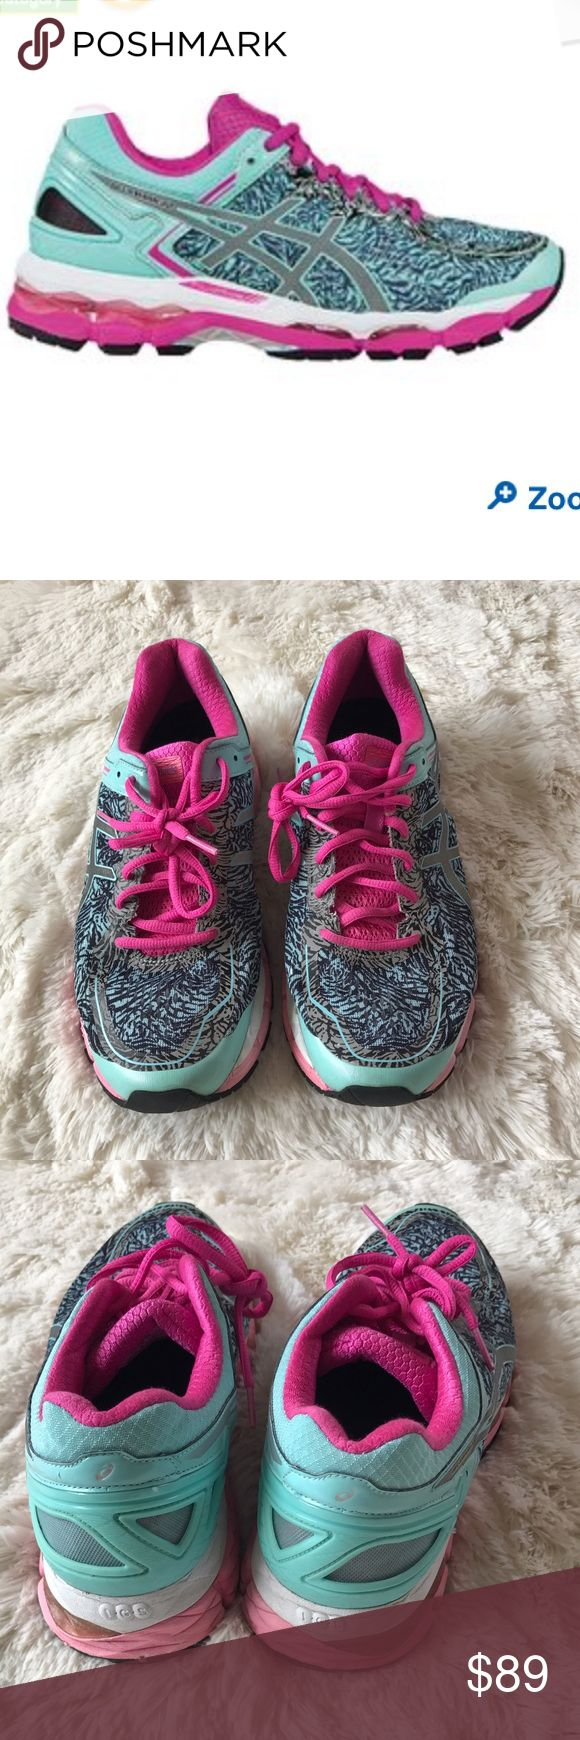 Asics Gel-Kayano 22 9.5 lite show aqua silver pink Asics running shoes in good condition size 9.5 Asics Shoes Athletic Shoes